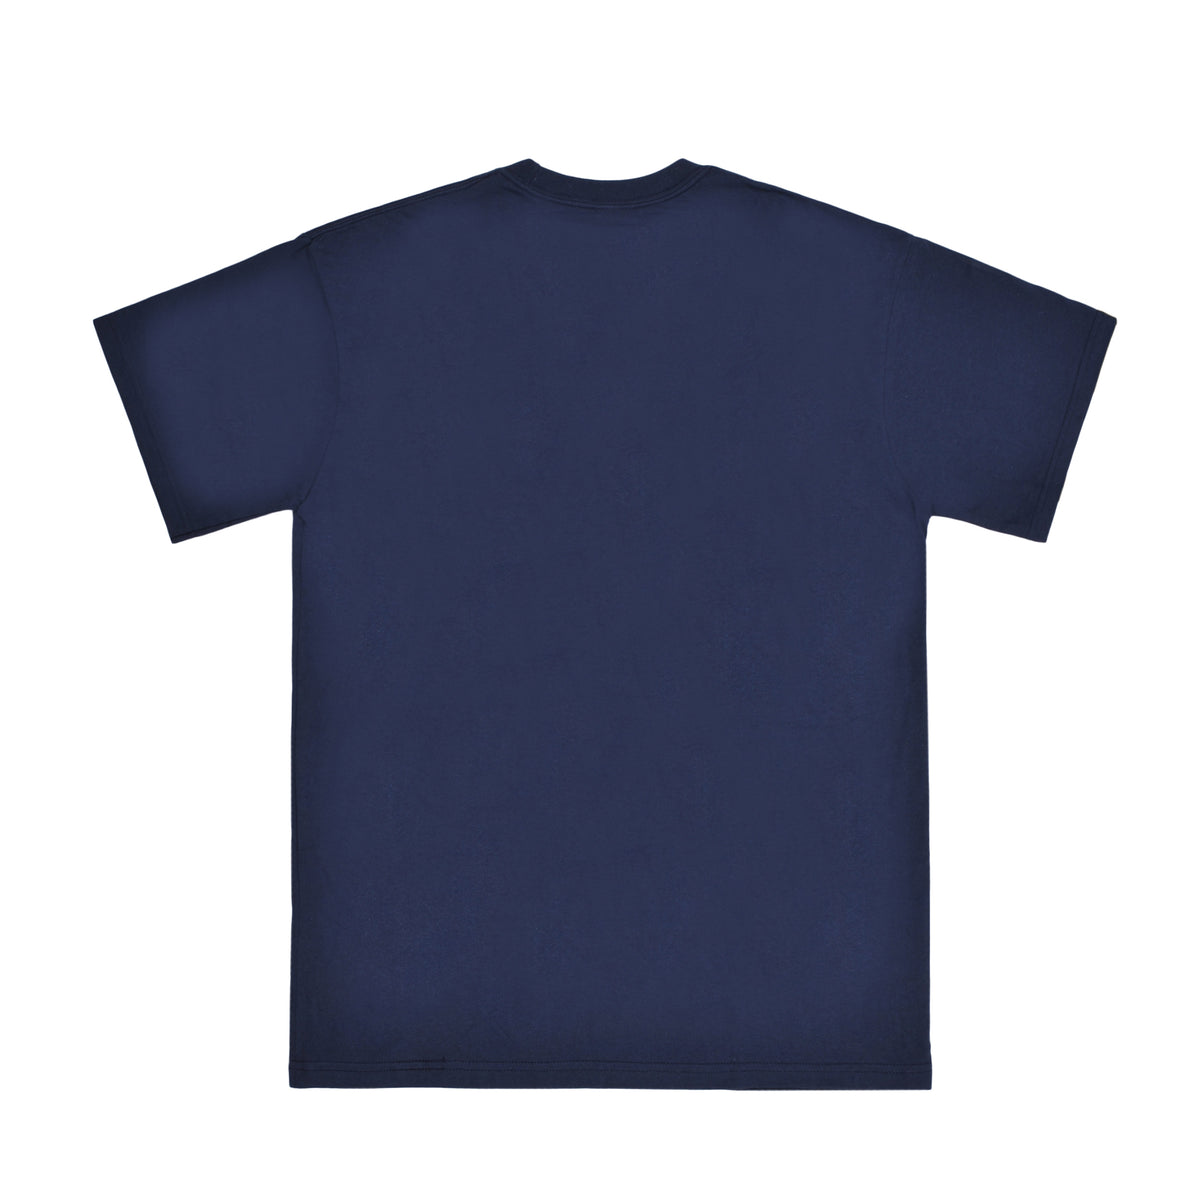 POCKET HAMMER tee navy - RAVE skateboards